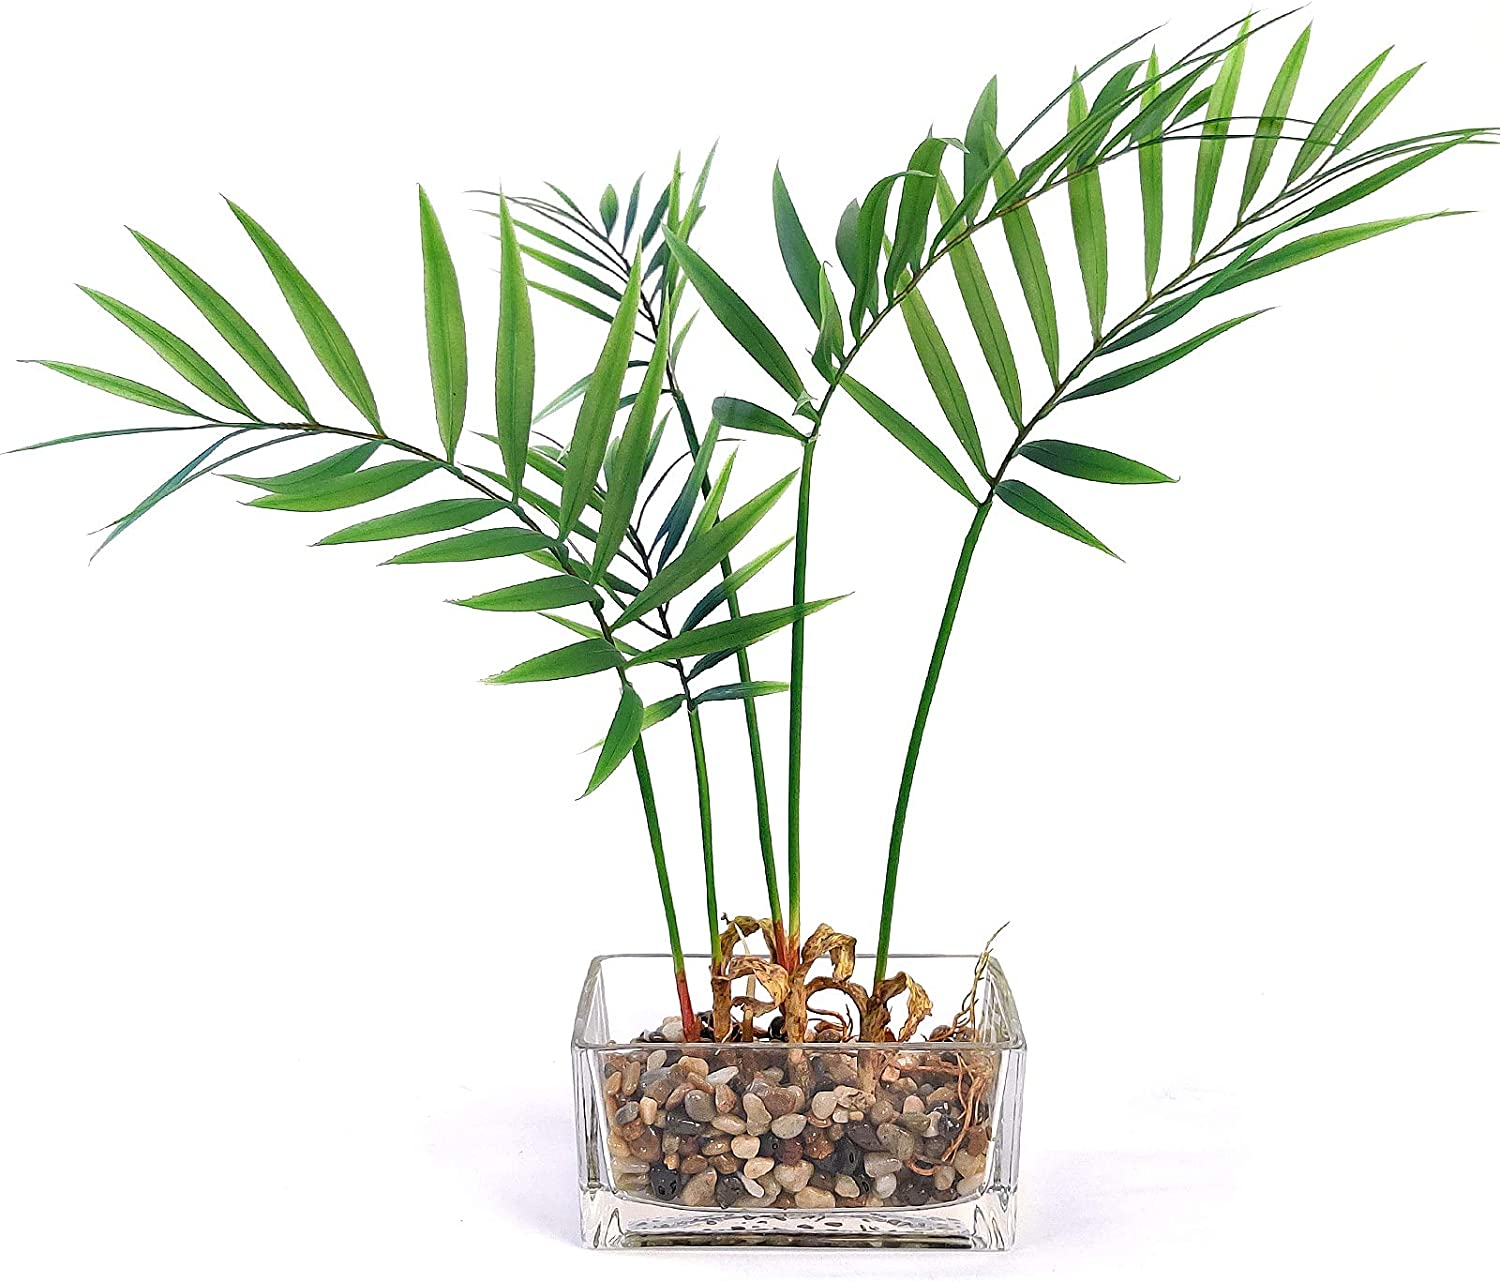 Homsunny Artificial Plants in Glass Vase, Artificial Flowers with Vase Centerpieces Home Decor for Tables, Fake Tabletop Greenery w/Clear Glass Pots (Bamboo)